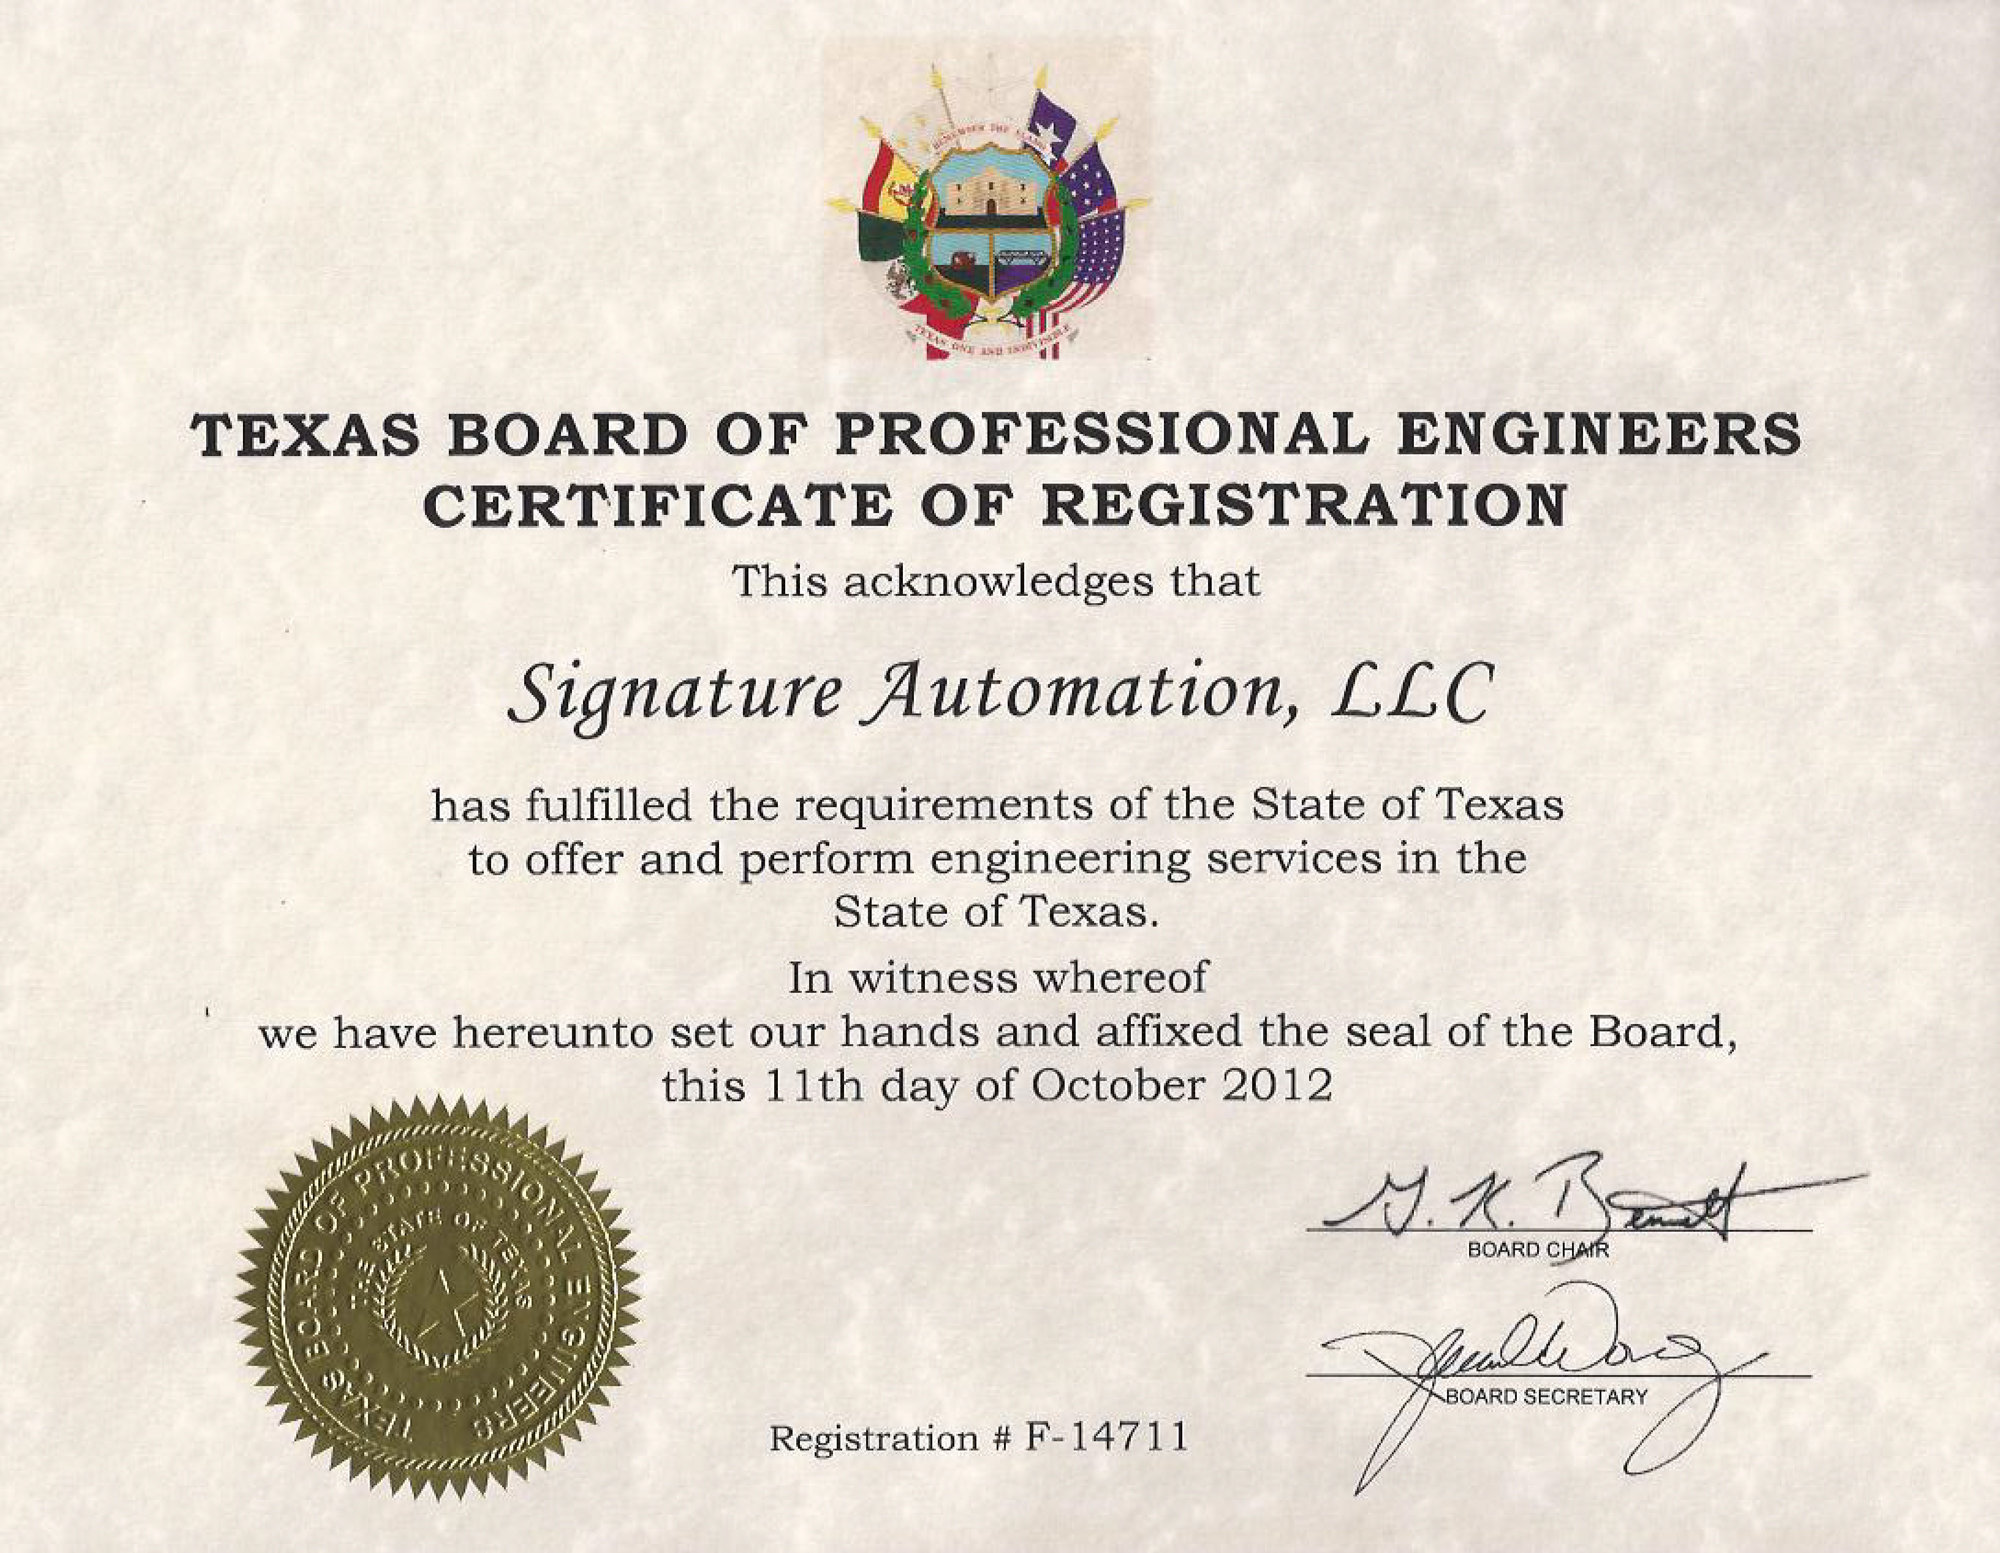 Certificates signature automation engineering dallas tx texas board of professional engineers firm registration xflitez Gallery